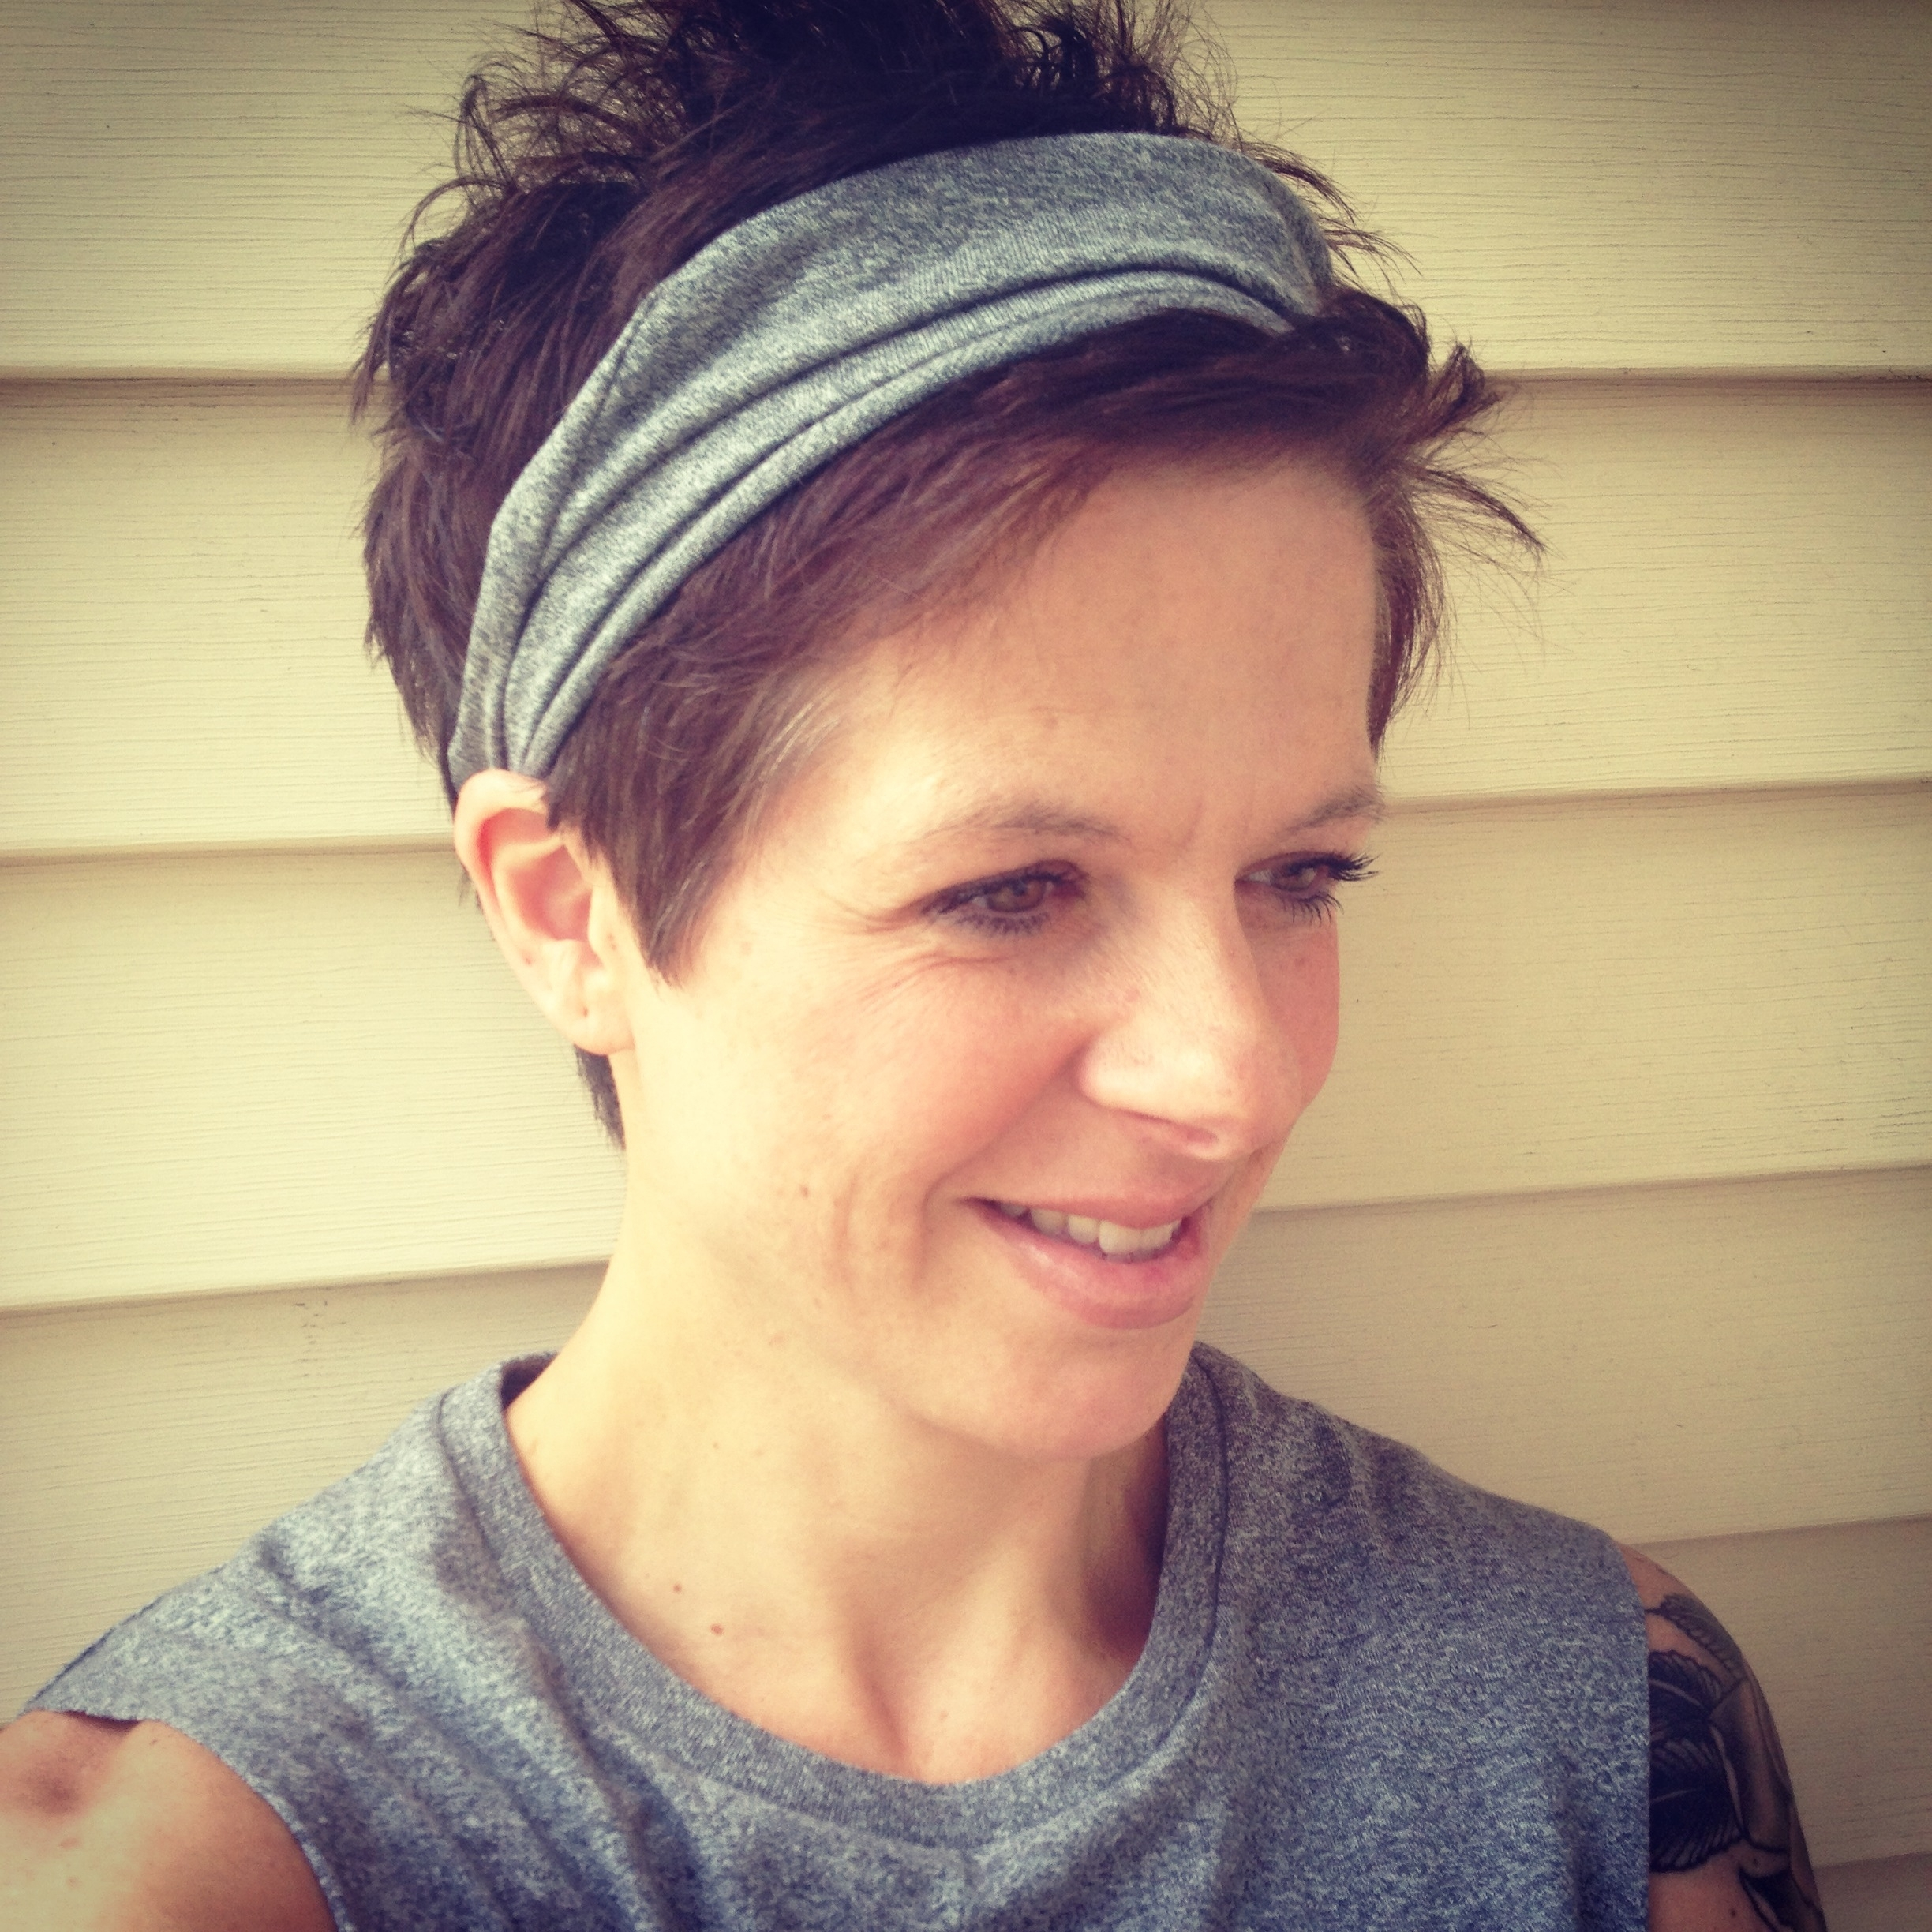 Yoga Headband Ideas For Short Hair : Trends For Girls & Womens In Most Recently Pixie Hairstyles With Headband (View 9 of 15)